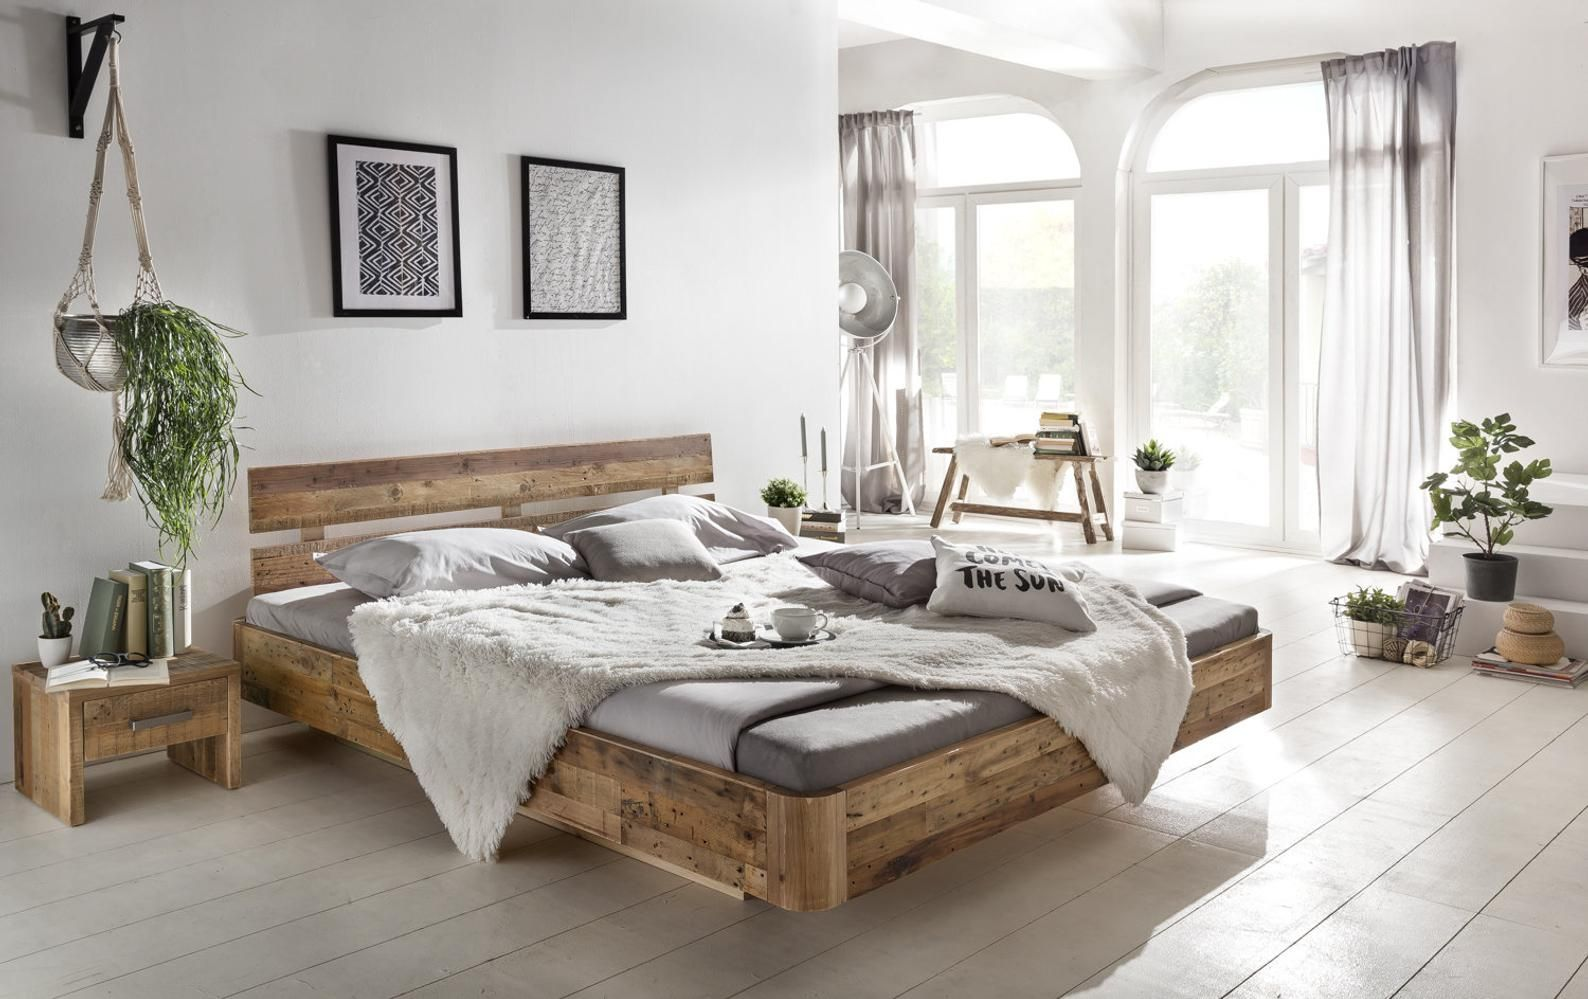 Woodking's bed Hampden 180x200 wooden bed suspended double